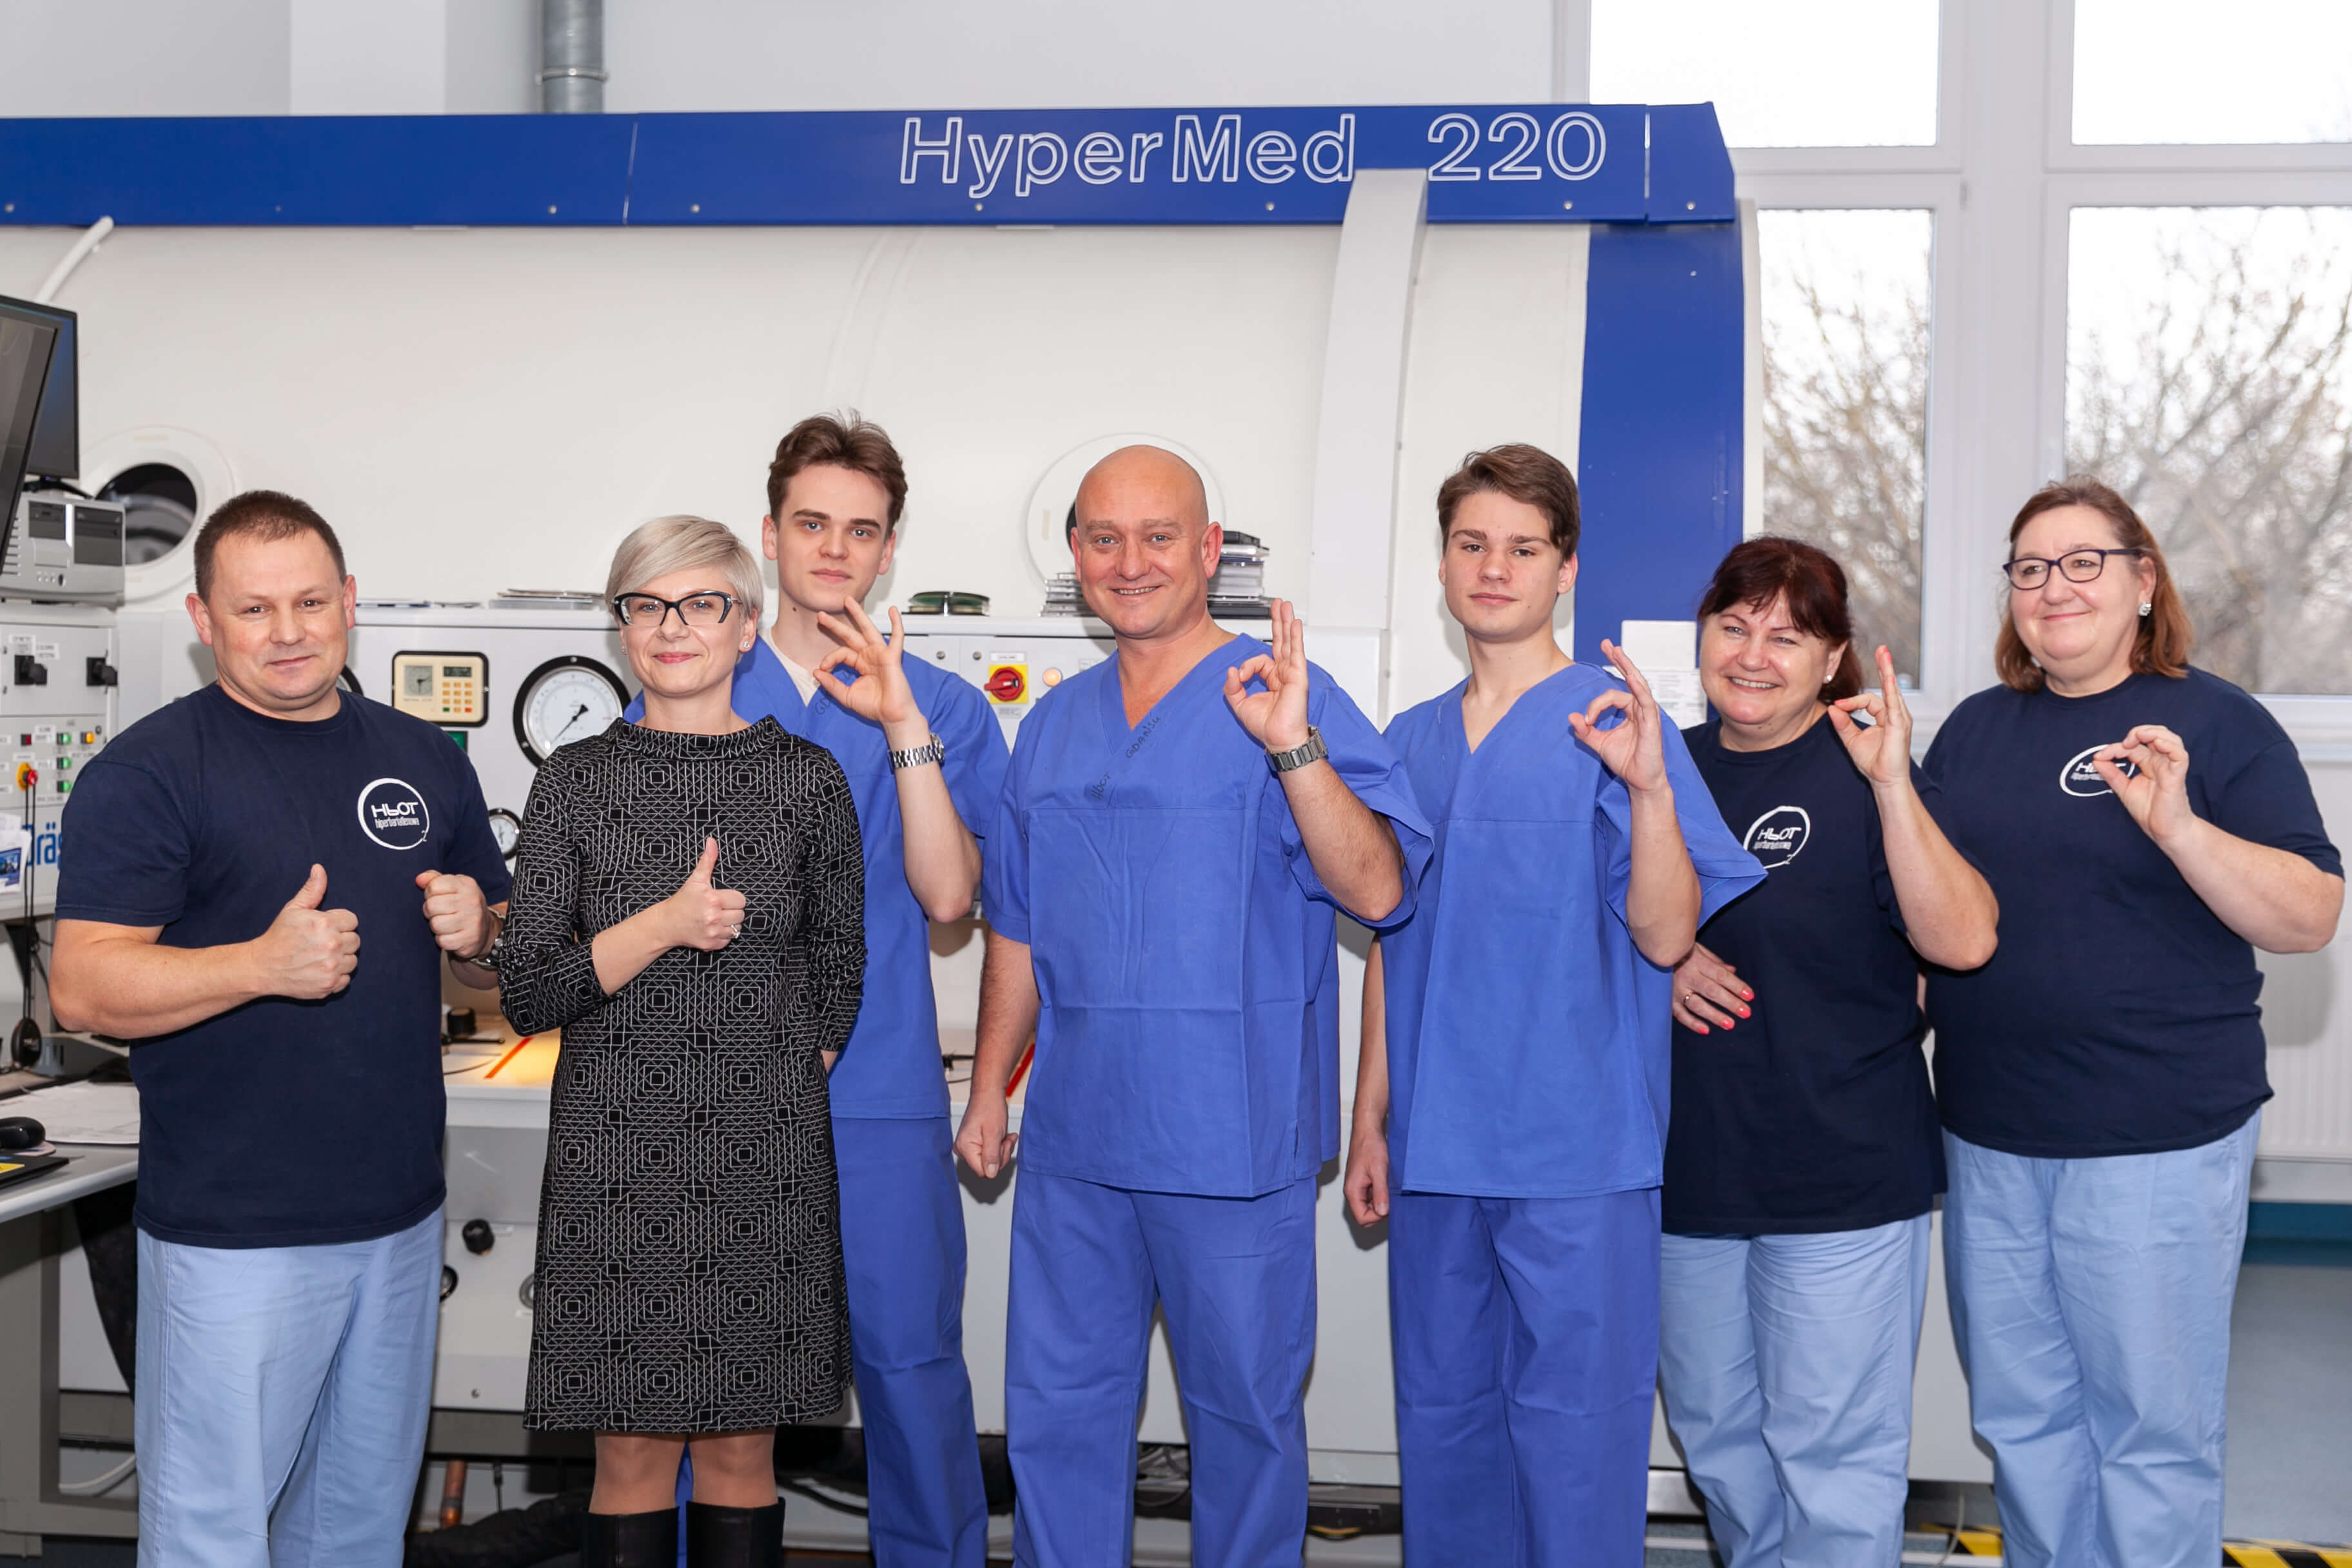 Centrum Hiperbarii Tlenowej i Leczenia Ran 15 1 - What can be the effects of hyperbaric oxygen therapy at the Hyperbaric Oxygen Therapy and Wound Healing Centre in Gdańsk?